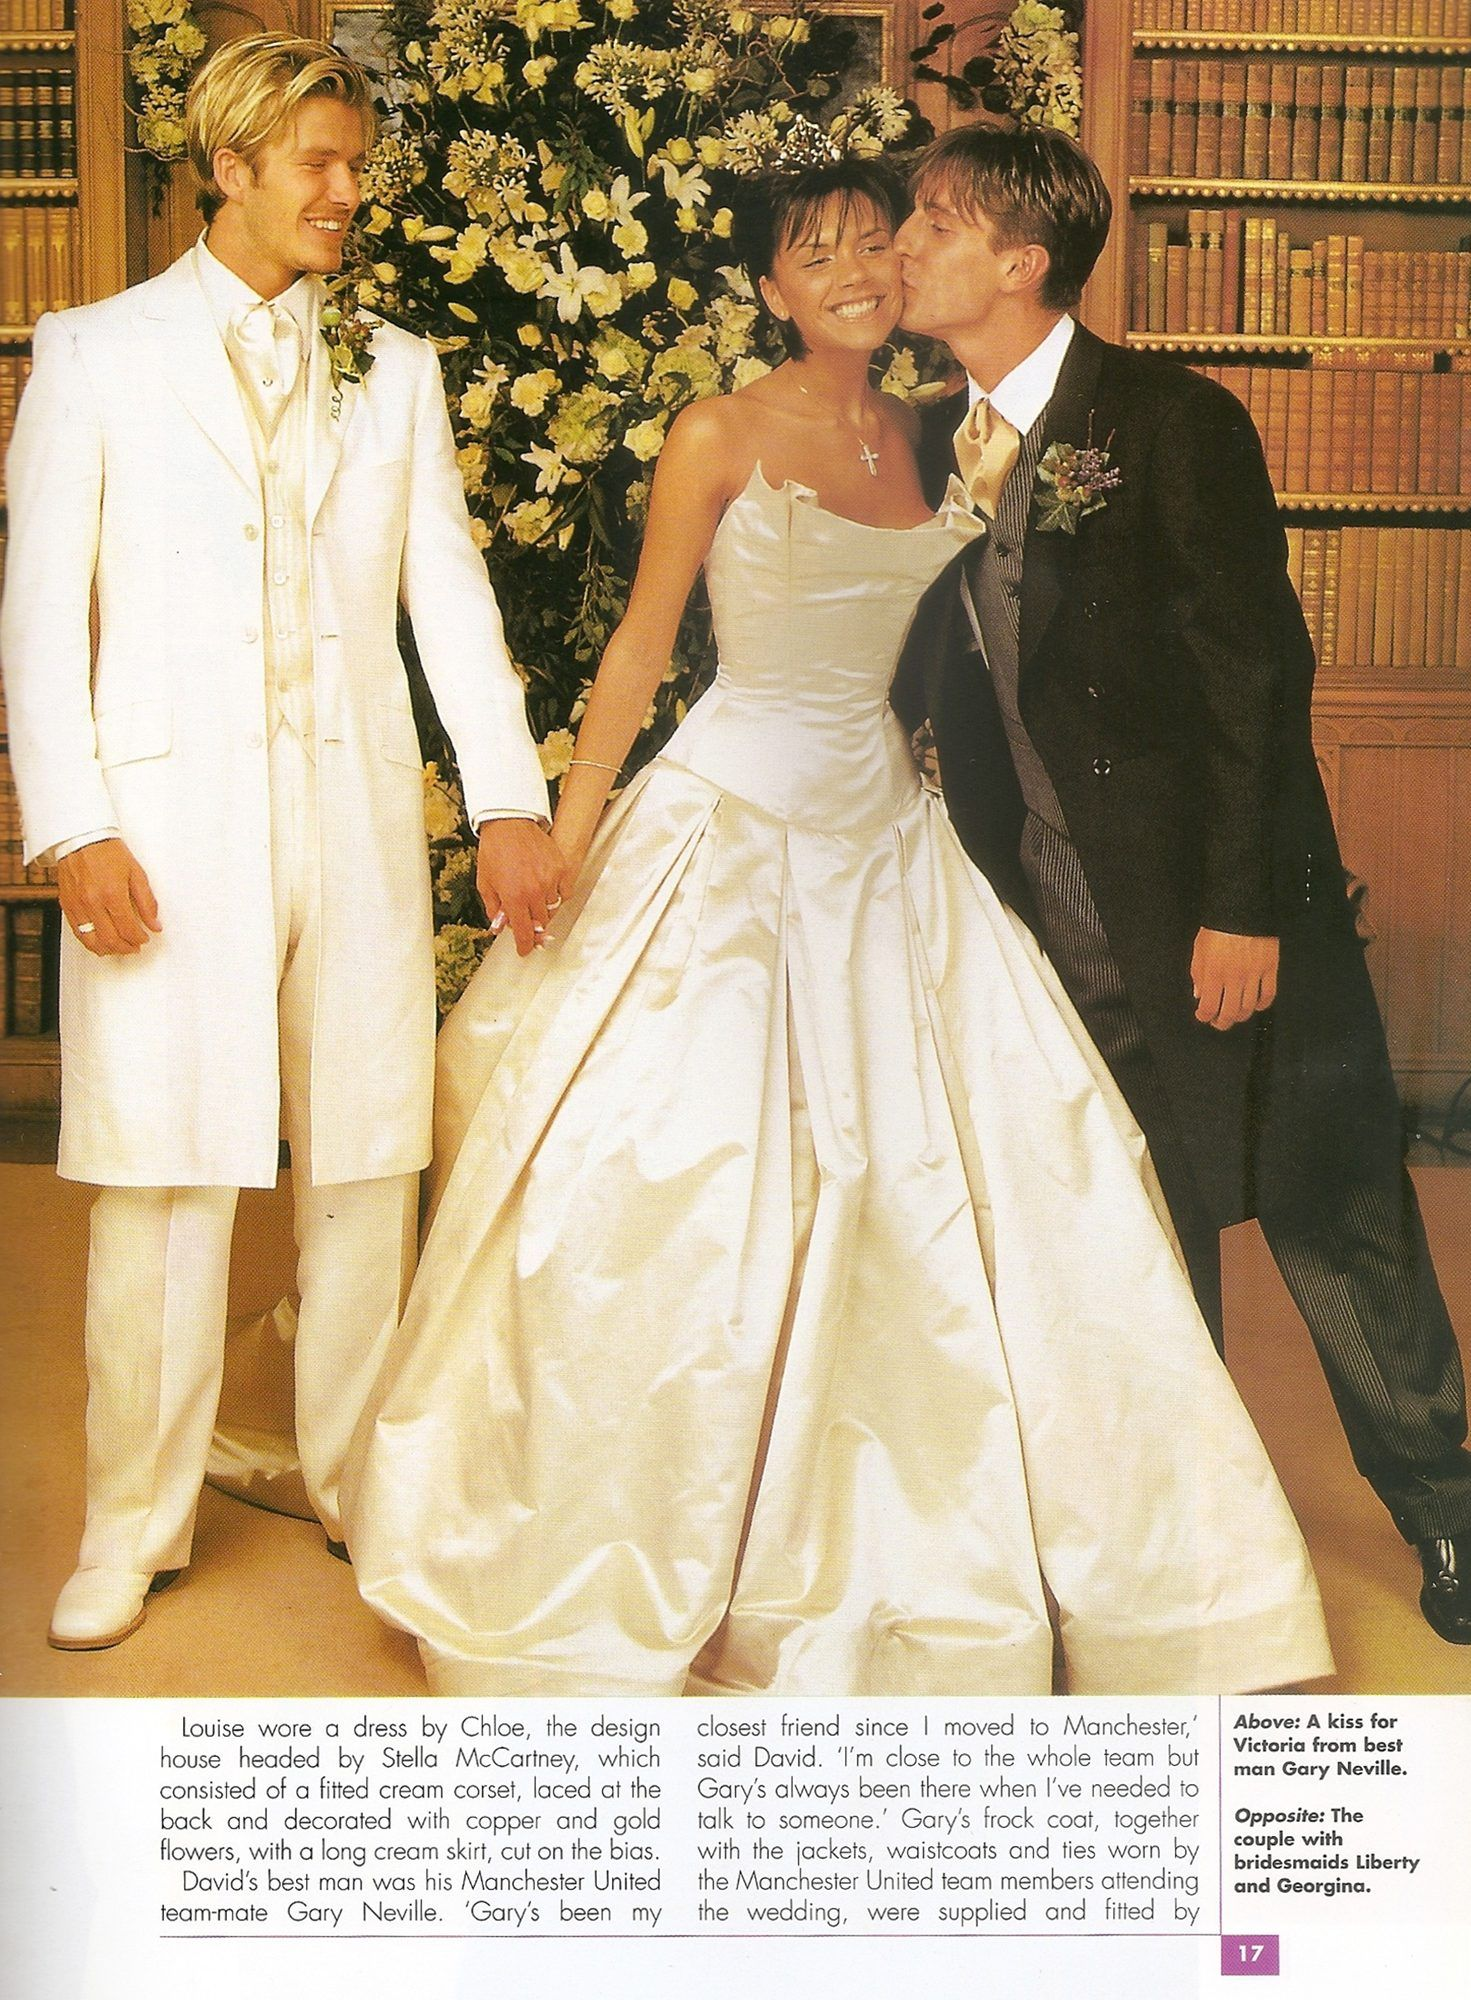 The Beckhams Photo: David and Victoria - Happy 14th Wedding Anniversary